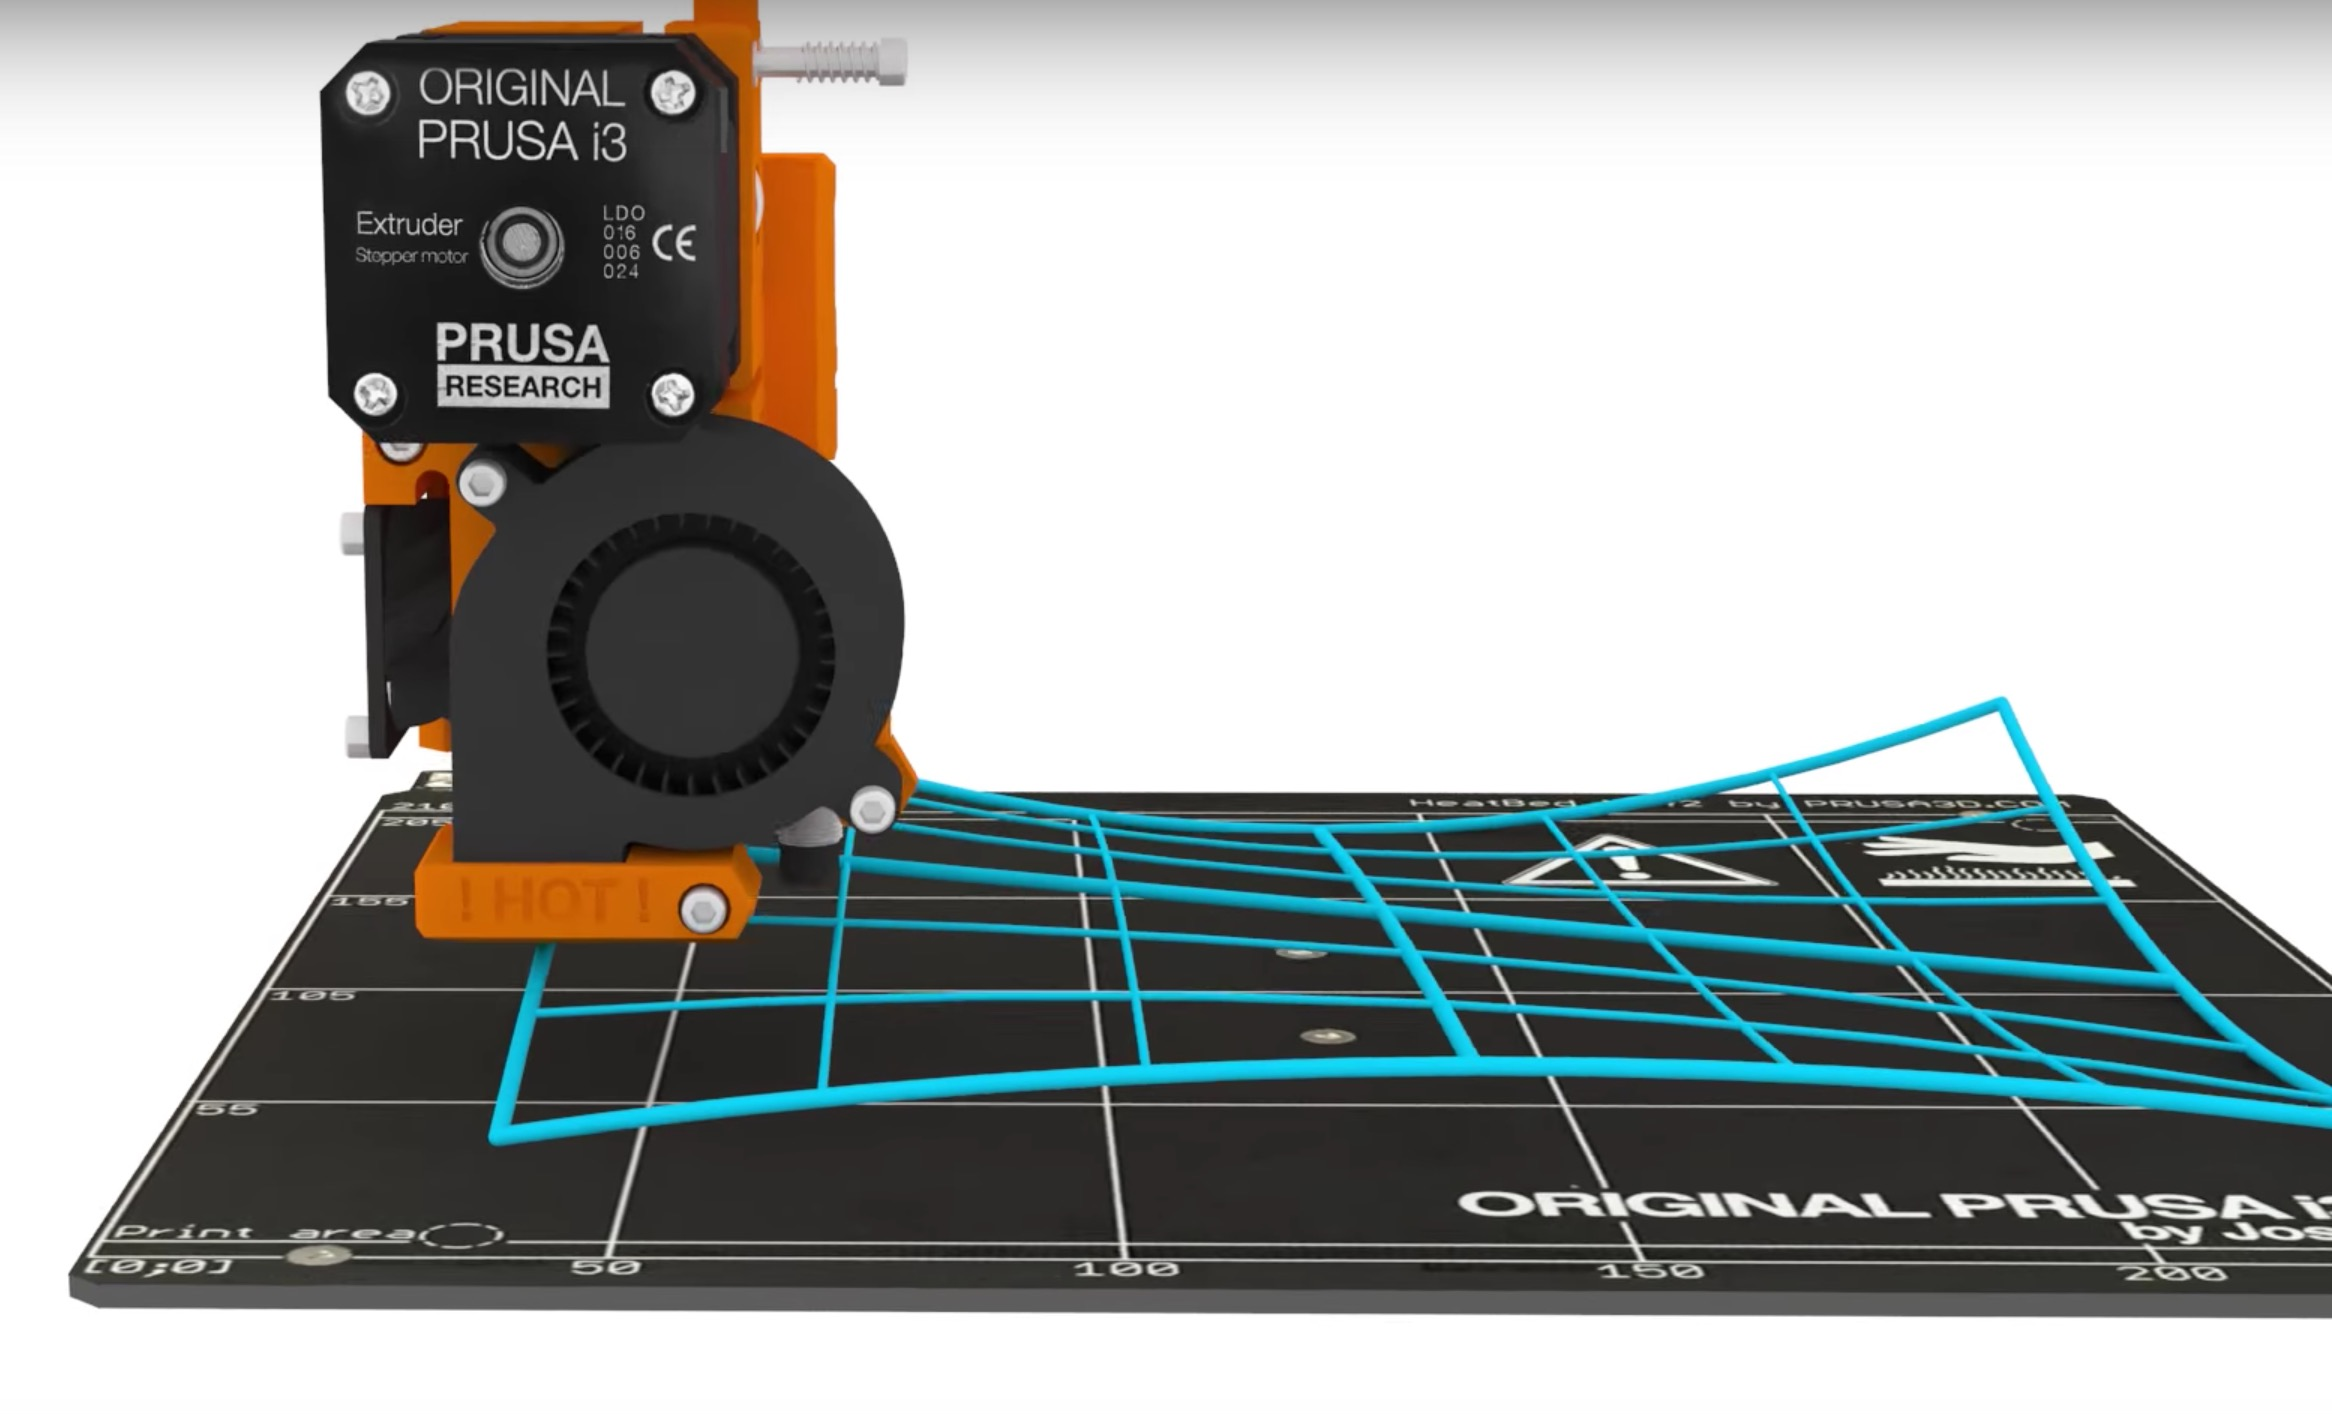 A graphic showing how the Prusa i3 MK2's auto calibration system handles non-flat print surfaces